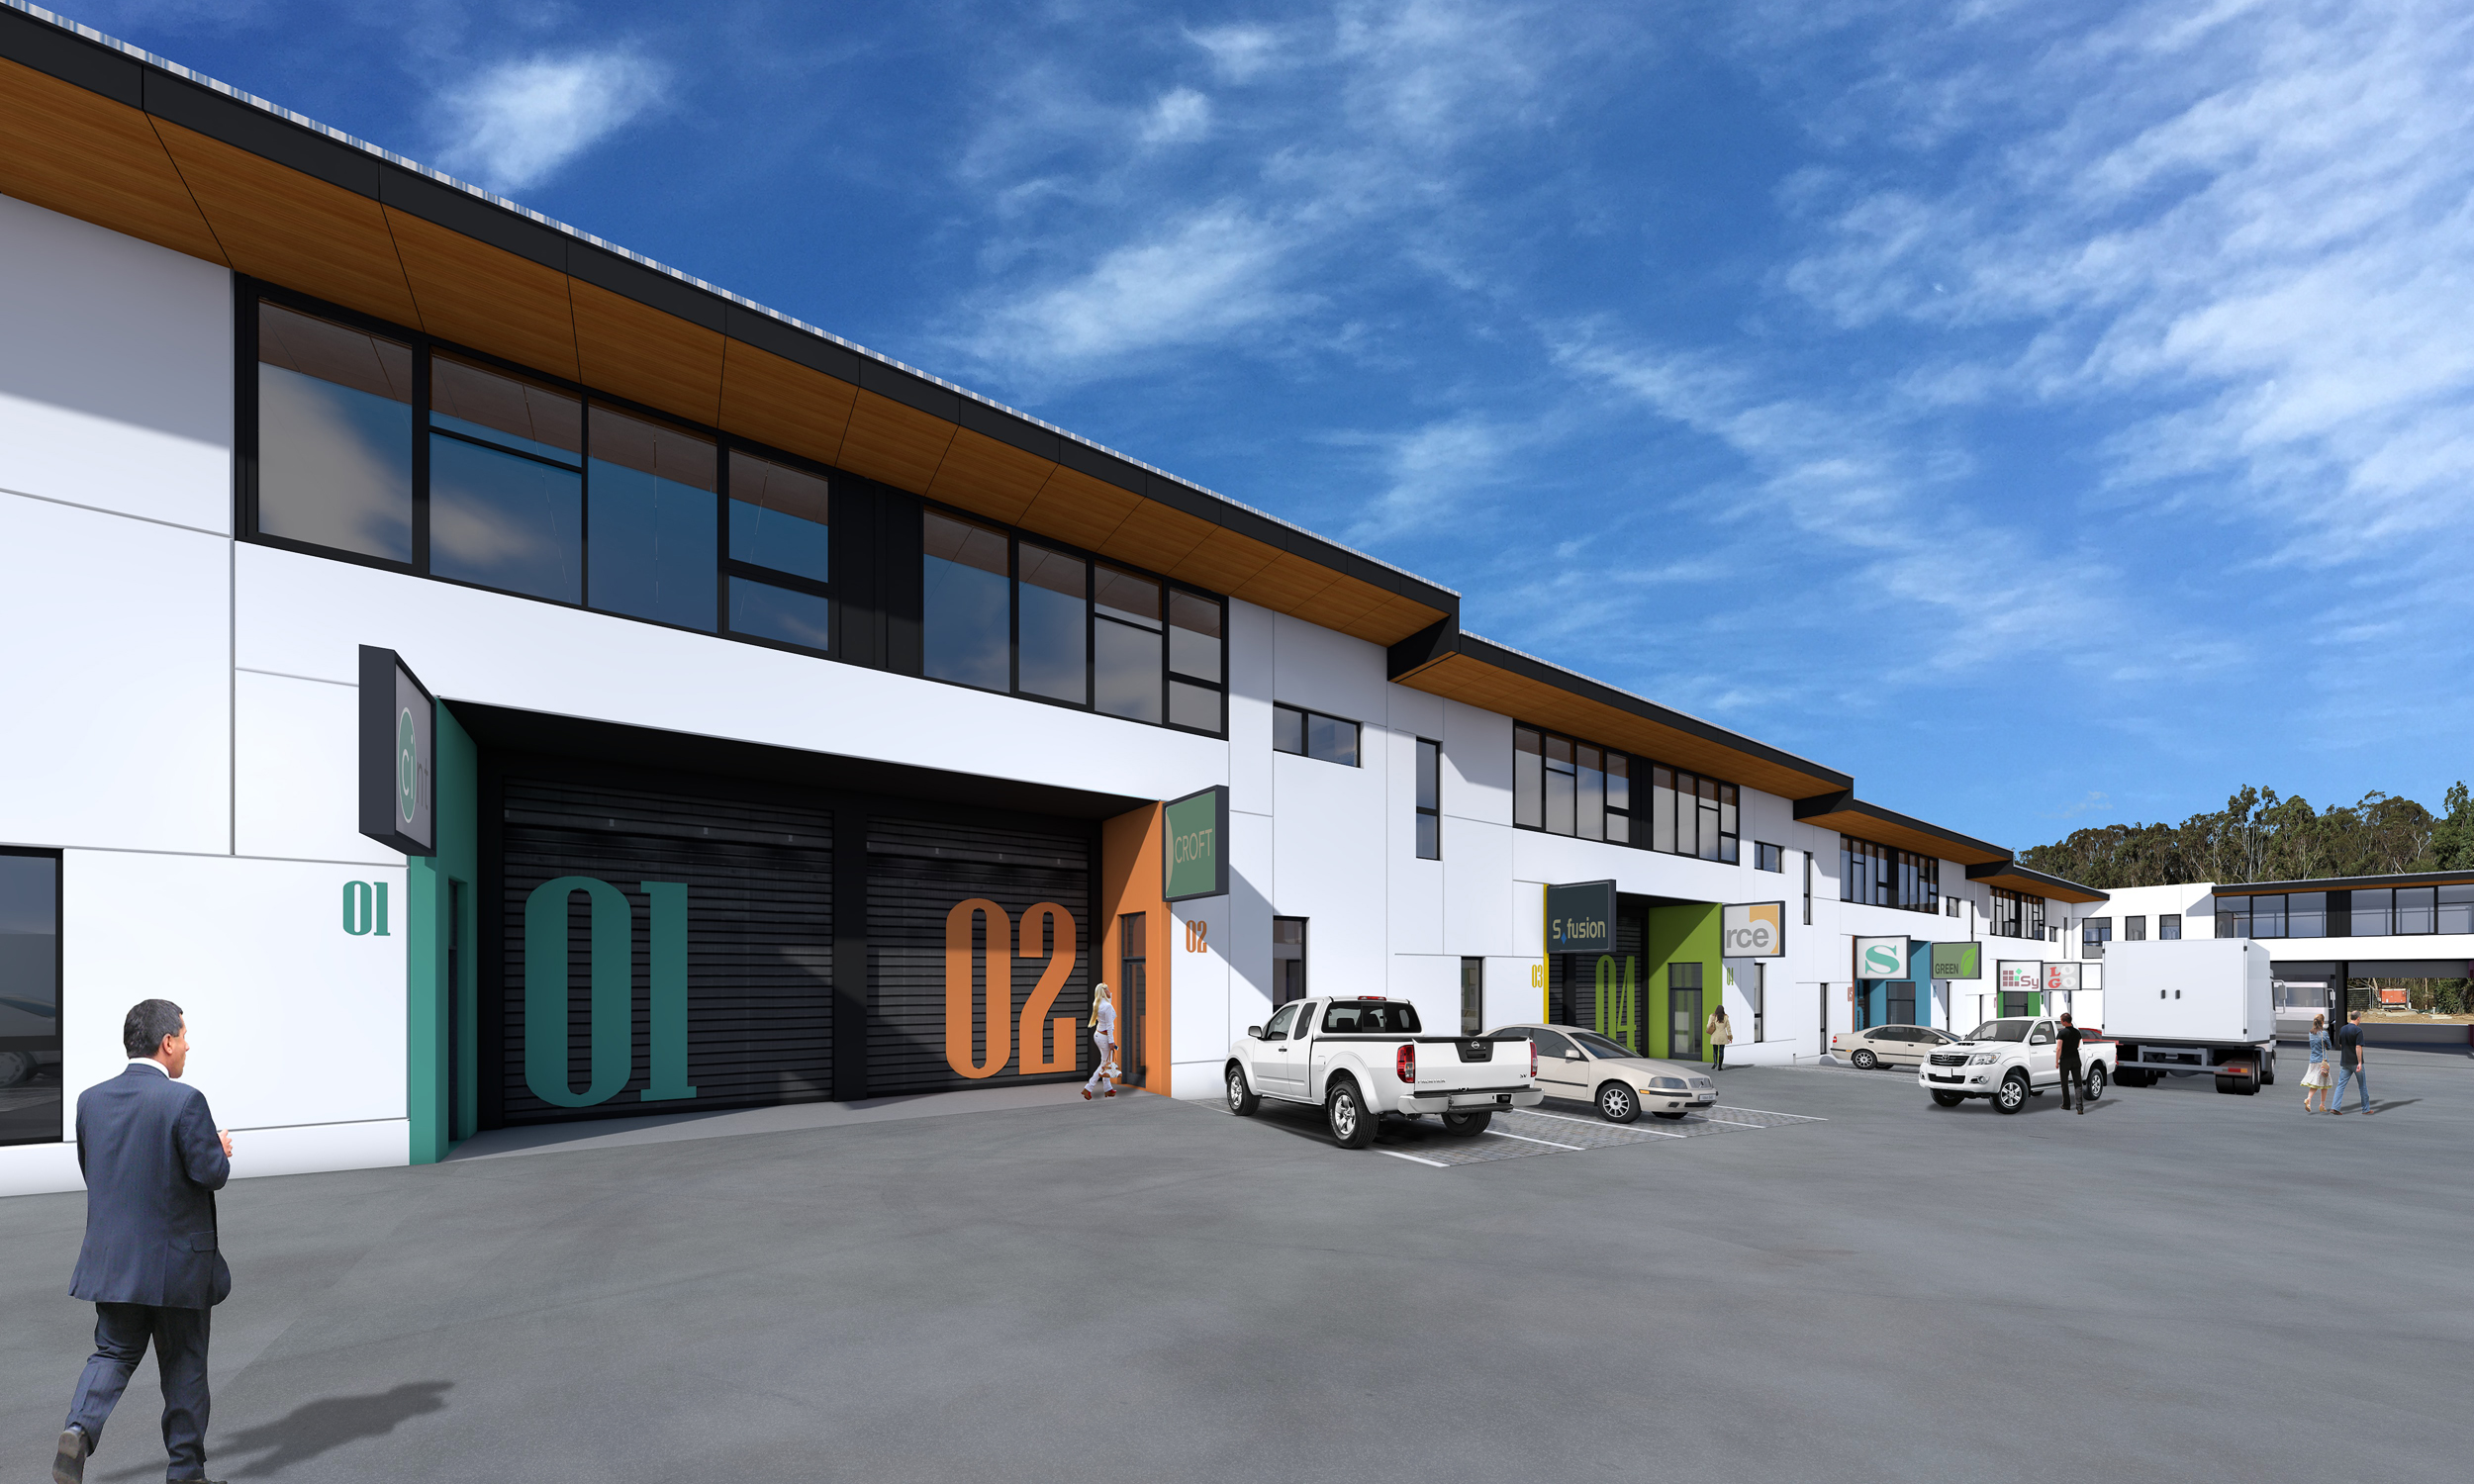 After 3D Creative Image work: Creative 3D Perspective industrial units